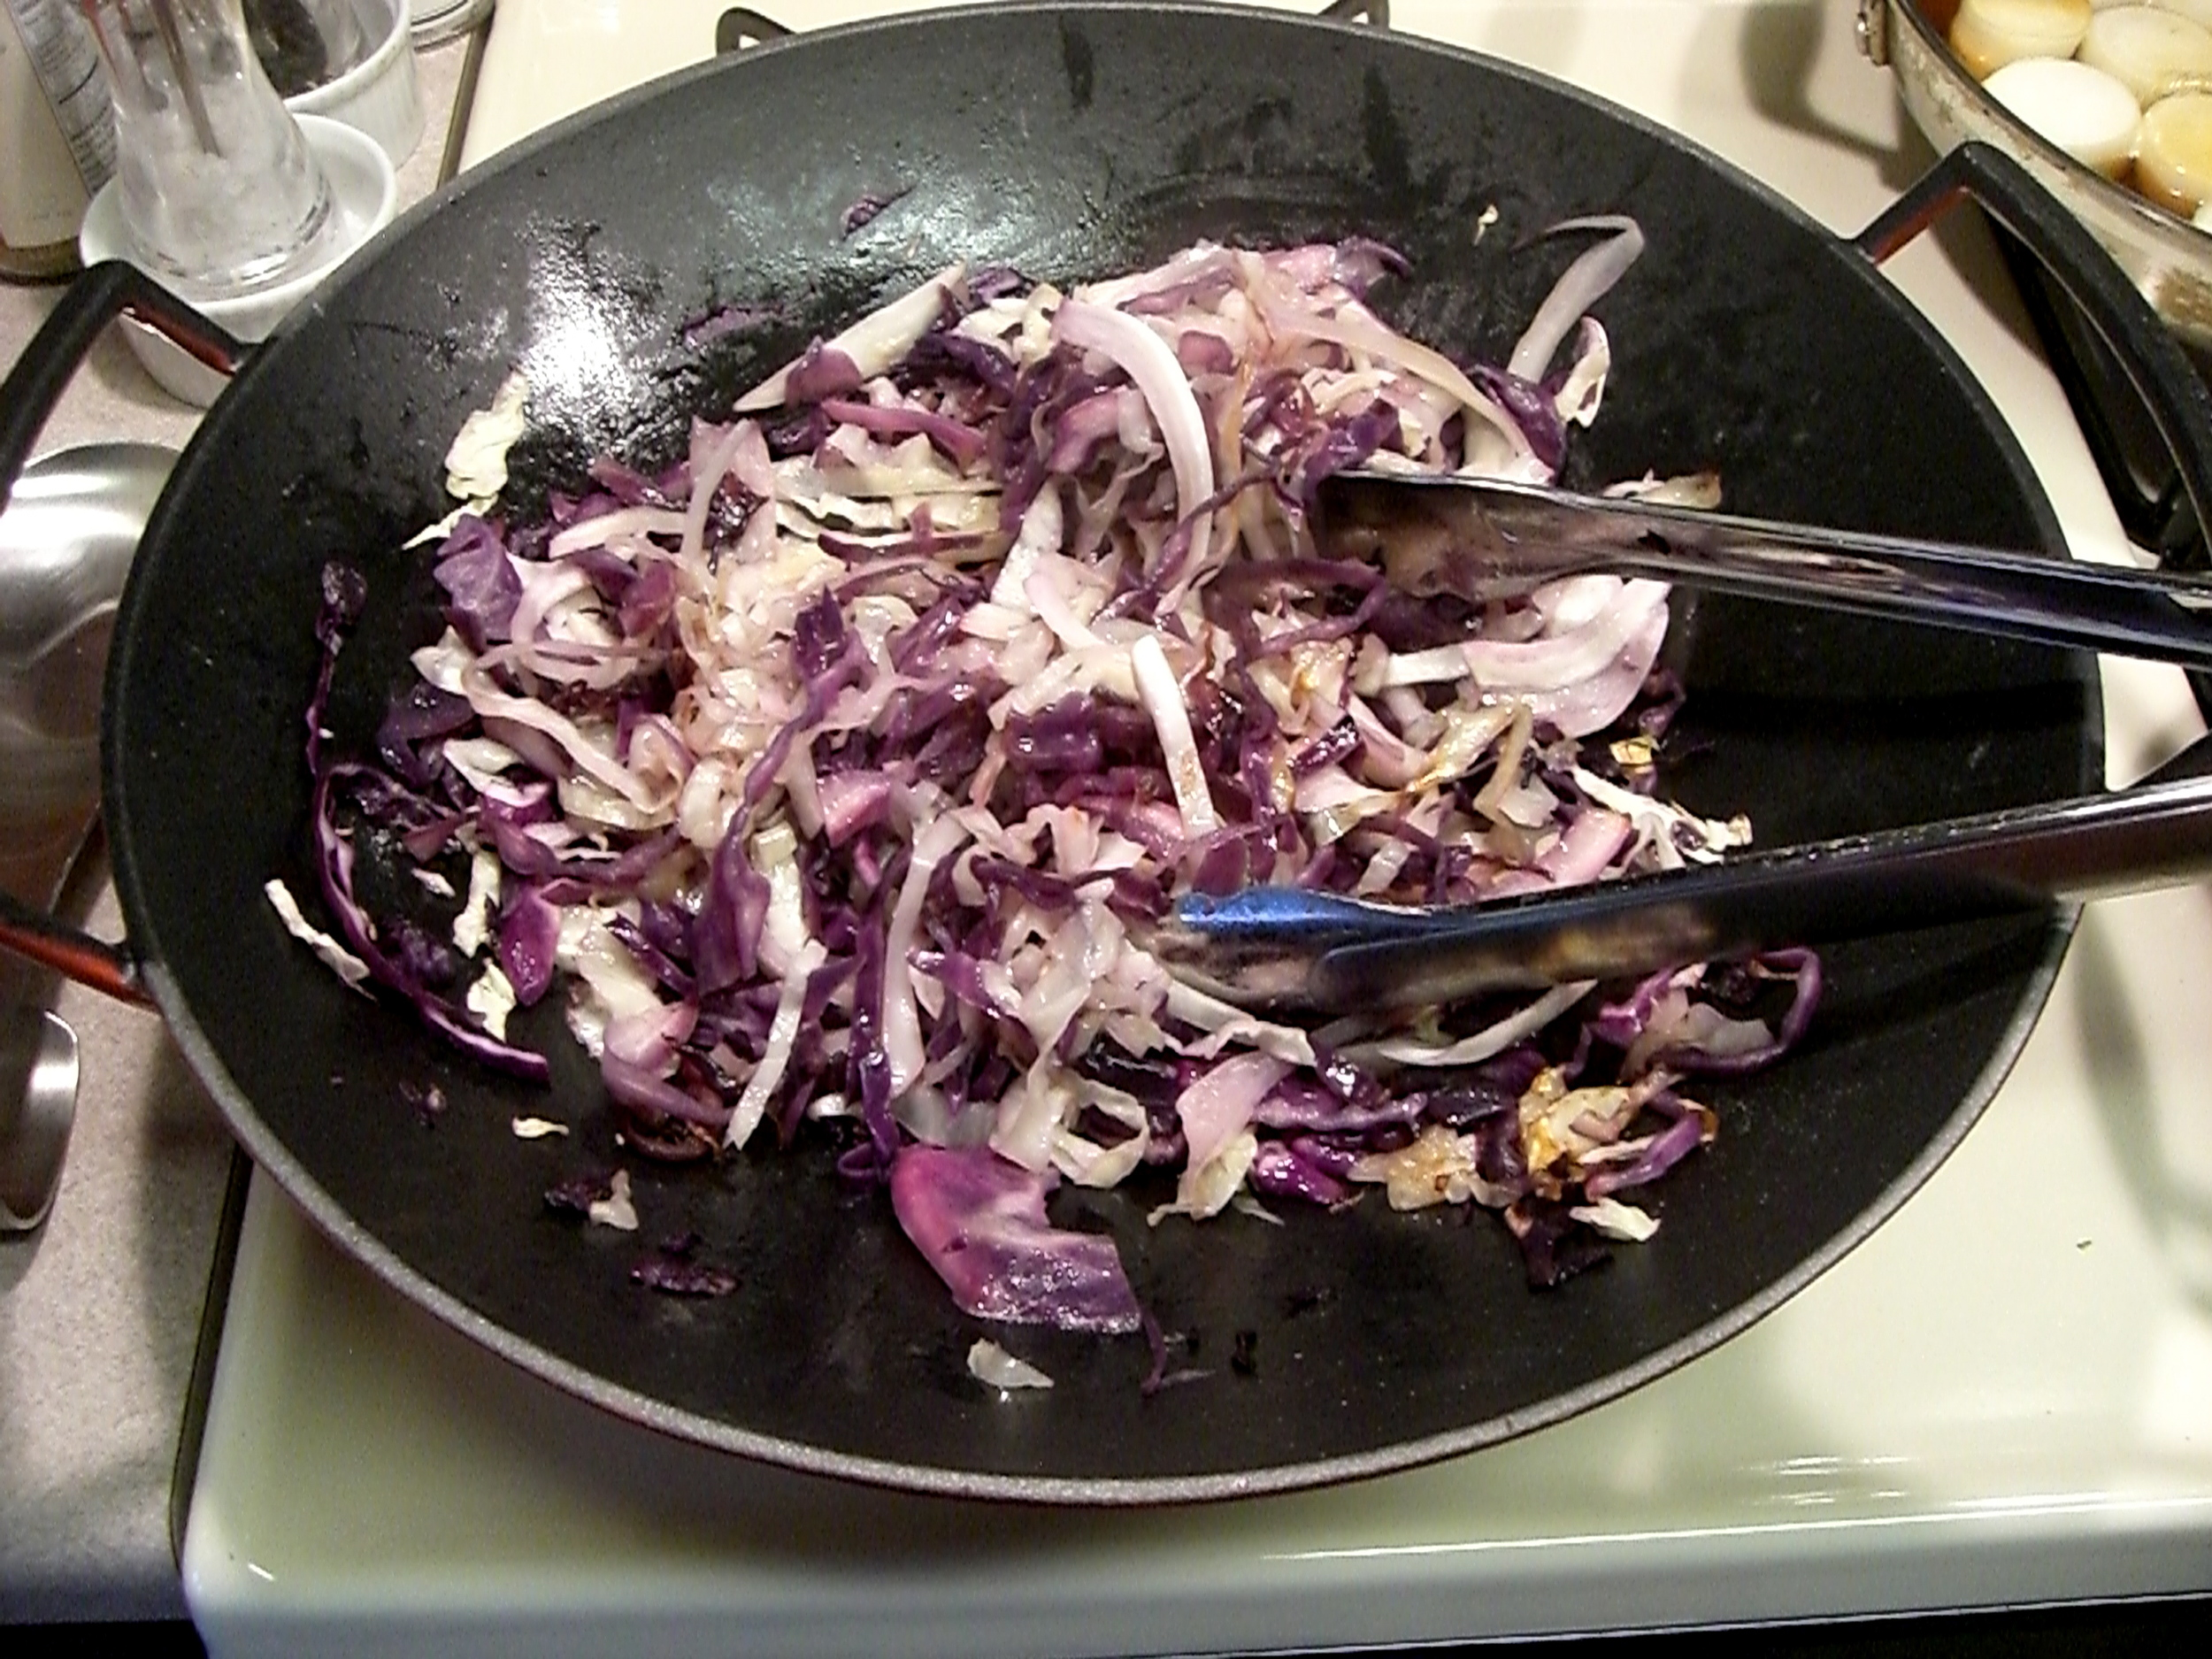 This vegan truffled cabbage is one of Richie's favorite dishes.